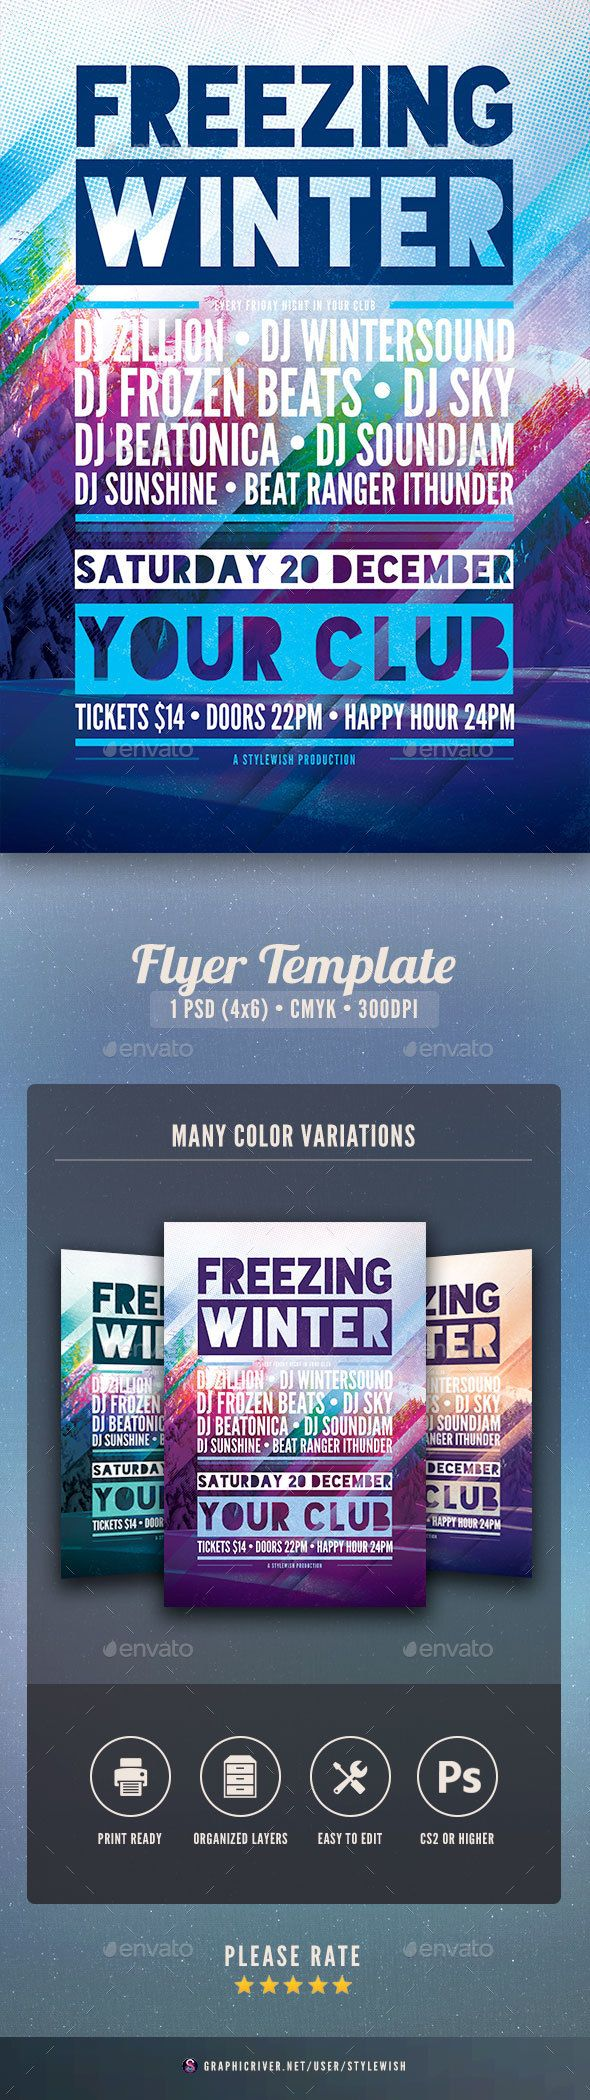 Freezing Winter Flyer  Flyer Template Event Flyers And Template